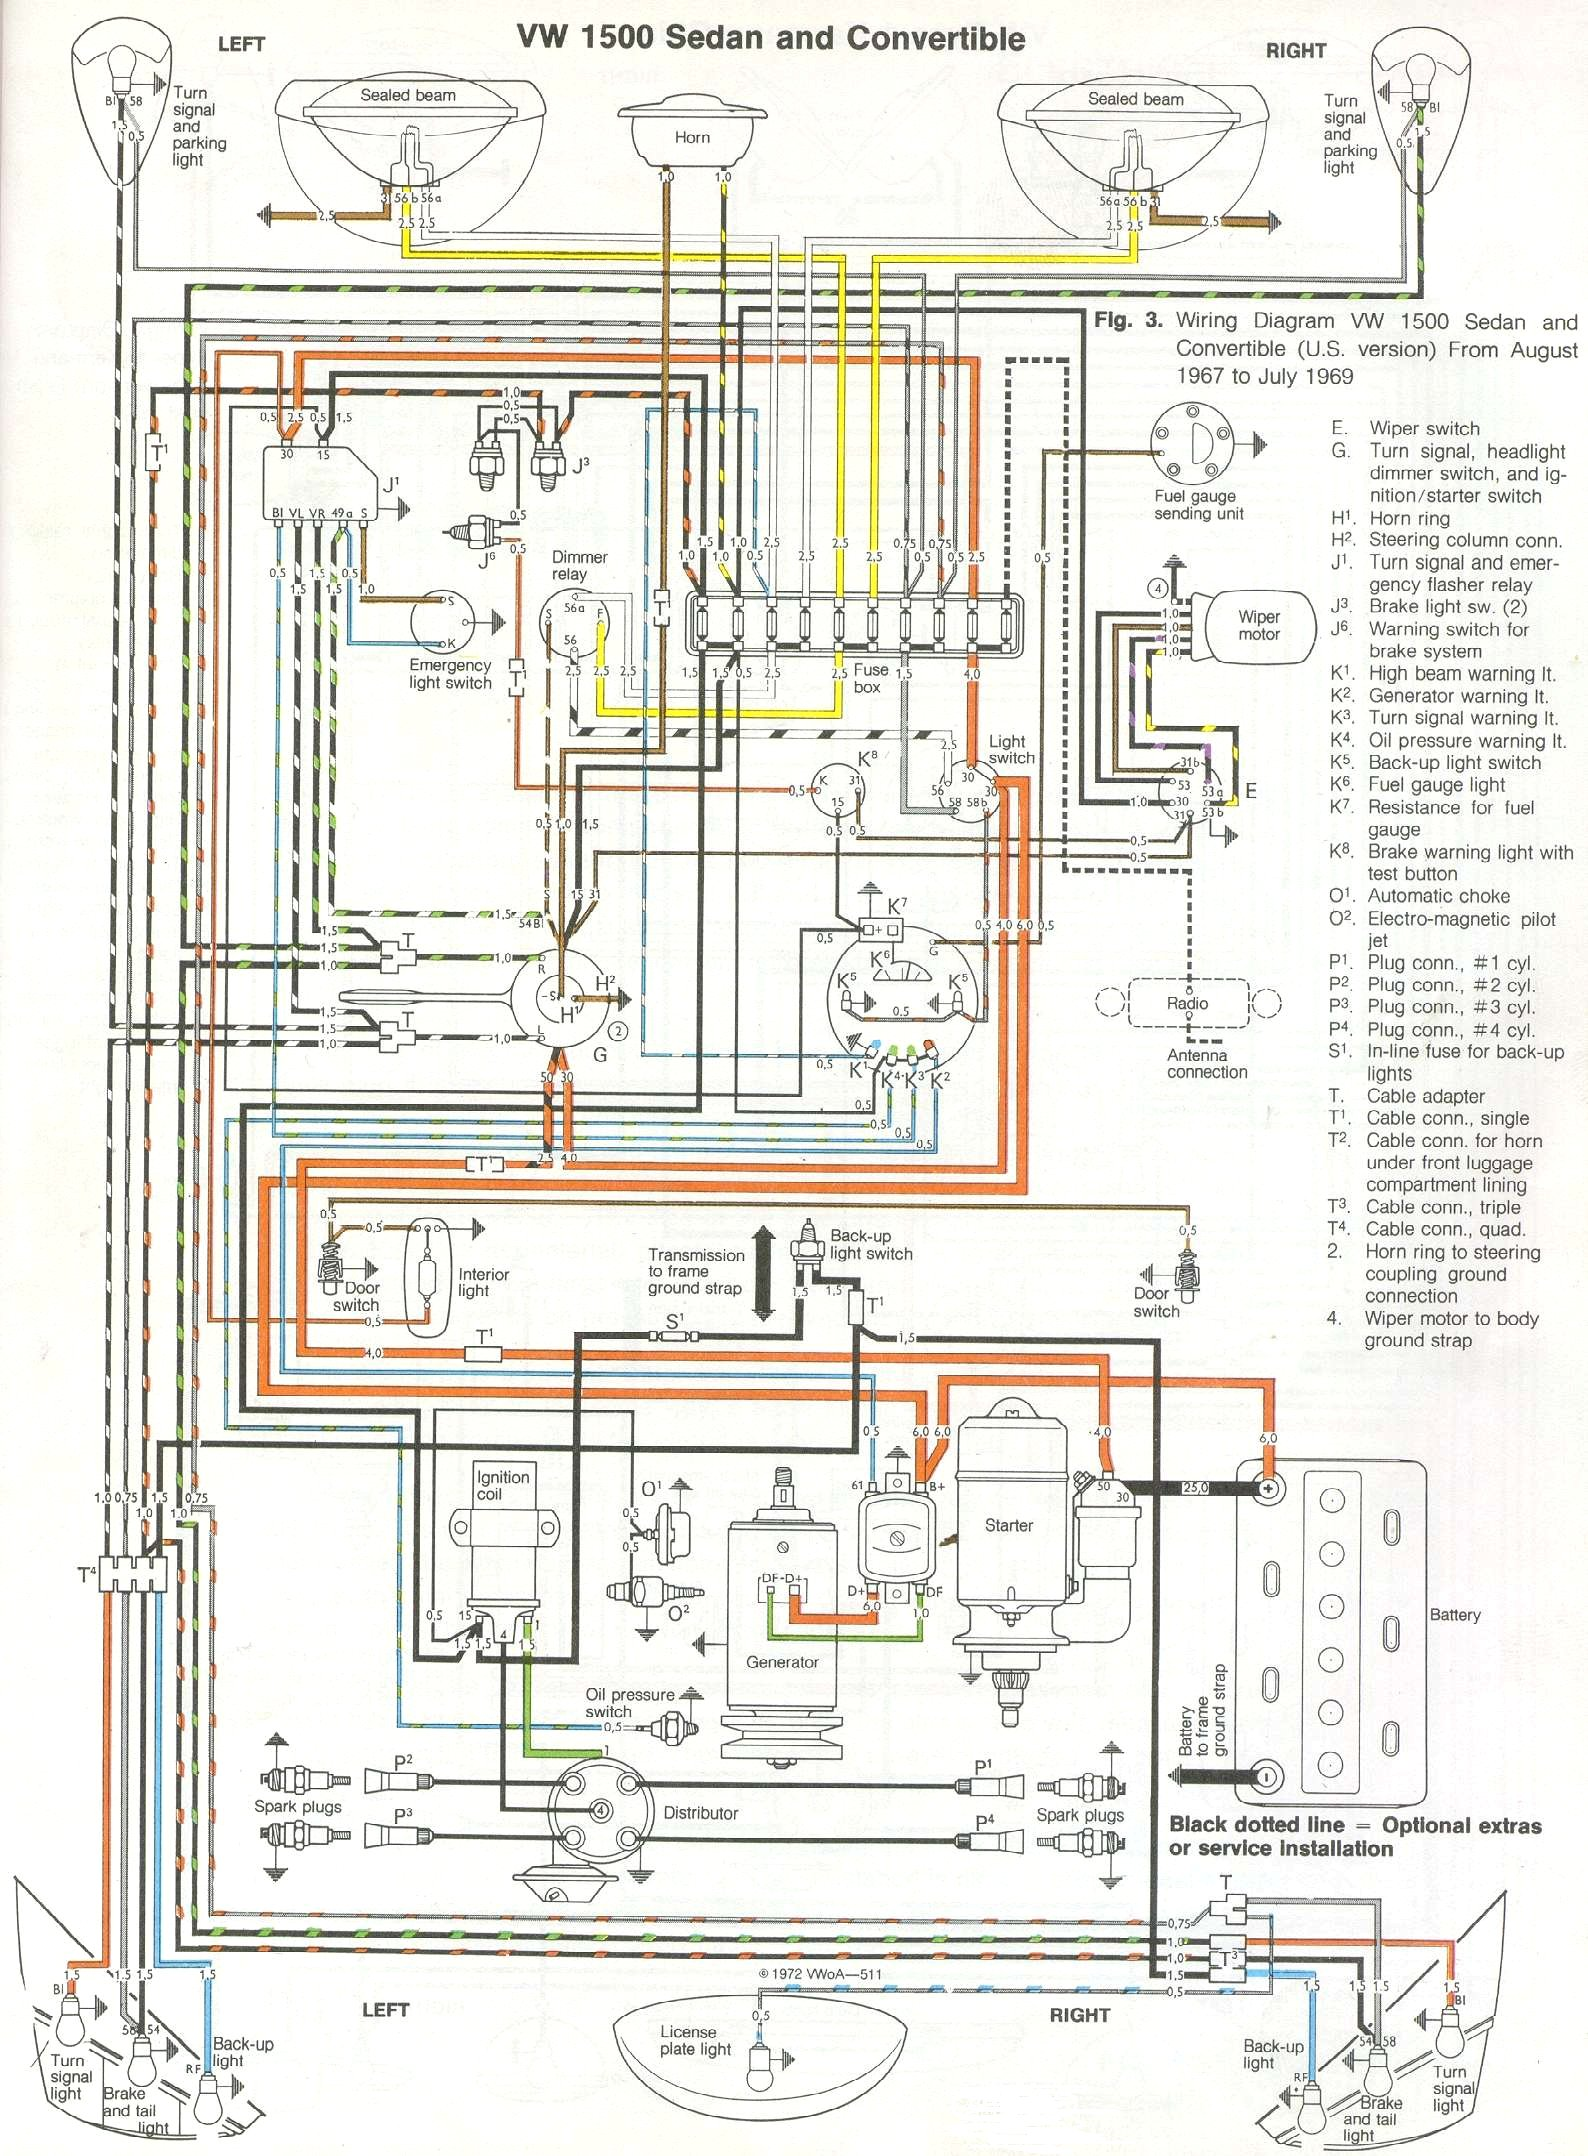 Vw Beetle Fuse Diagram Wiring Schemes 2012 F250 Windshield Wiper 1969 71 Thegoldenbug Com Rh